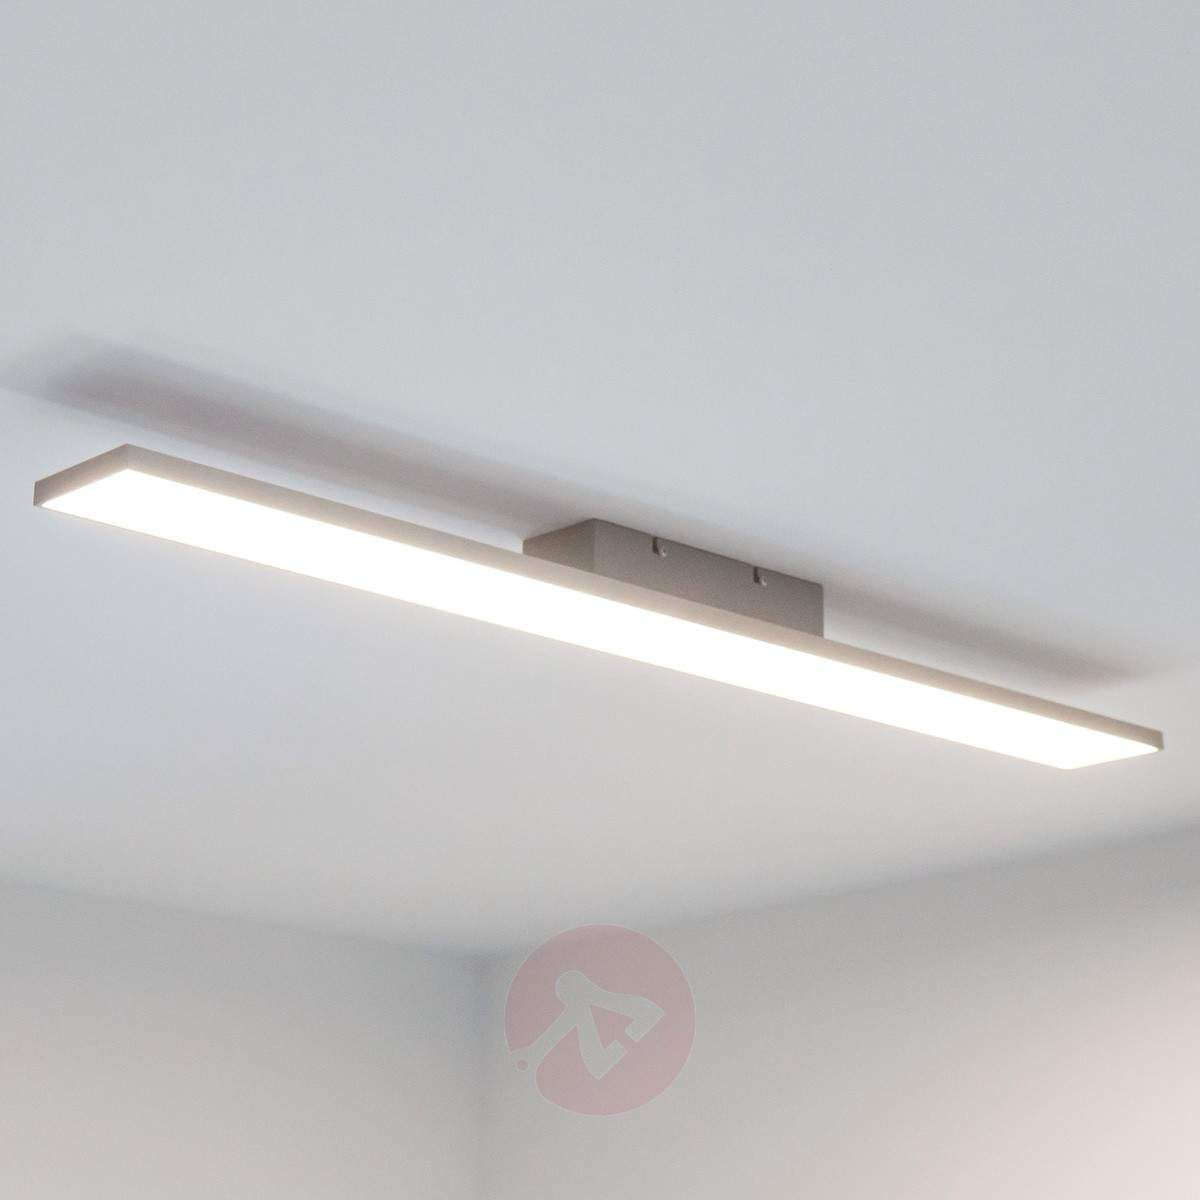 Long led ceiling panel rory ceiling lights 9987038 30 sanitarium long led ceiling panel rory ceiling lights 9987038 30 arubaitofo Image collections